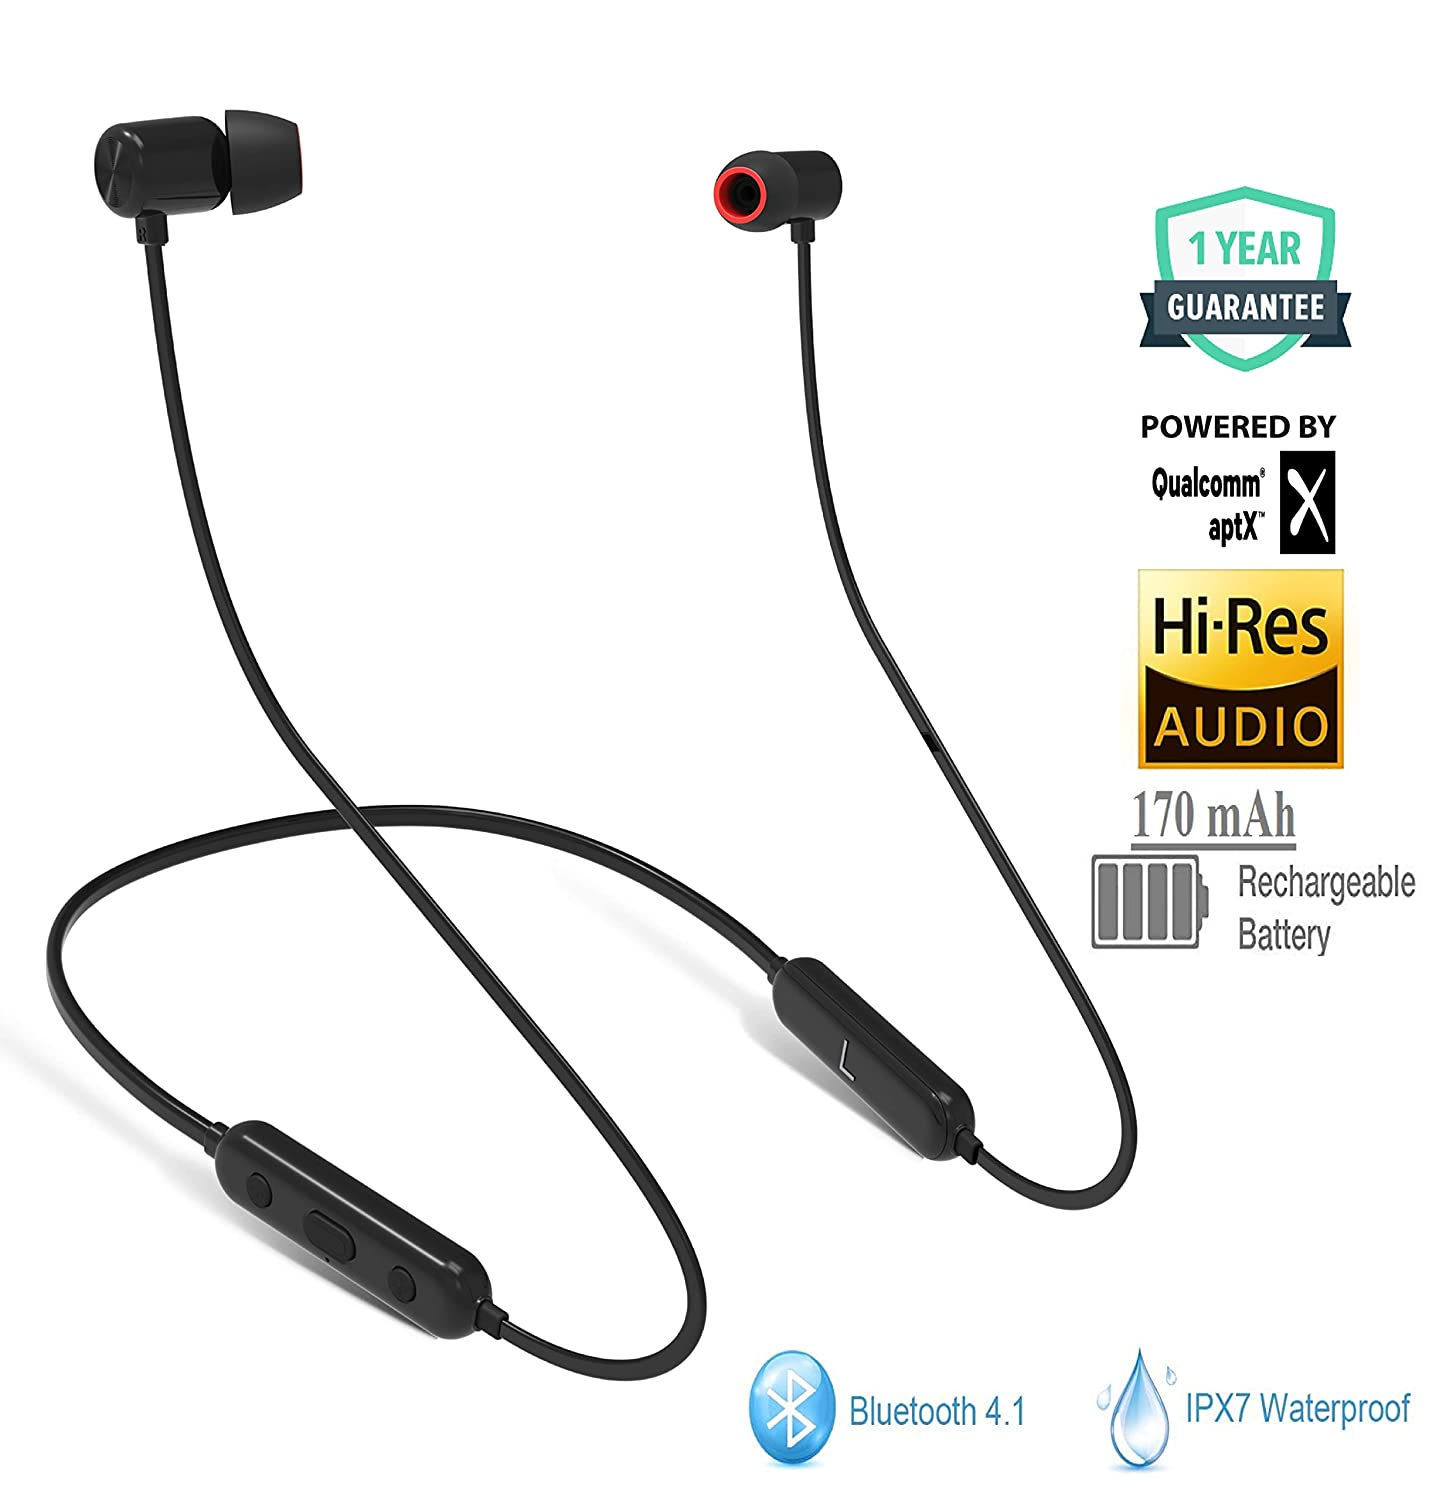 Wearfit Stroke Flex Bluetooth 4.1 in Ear Wireless IPX7